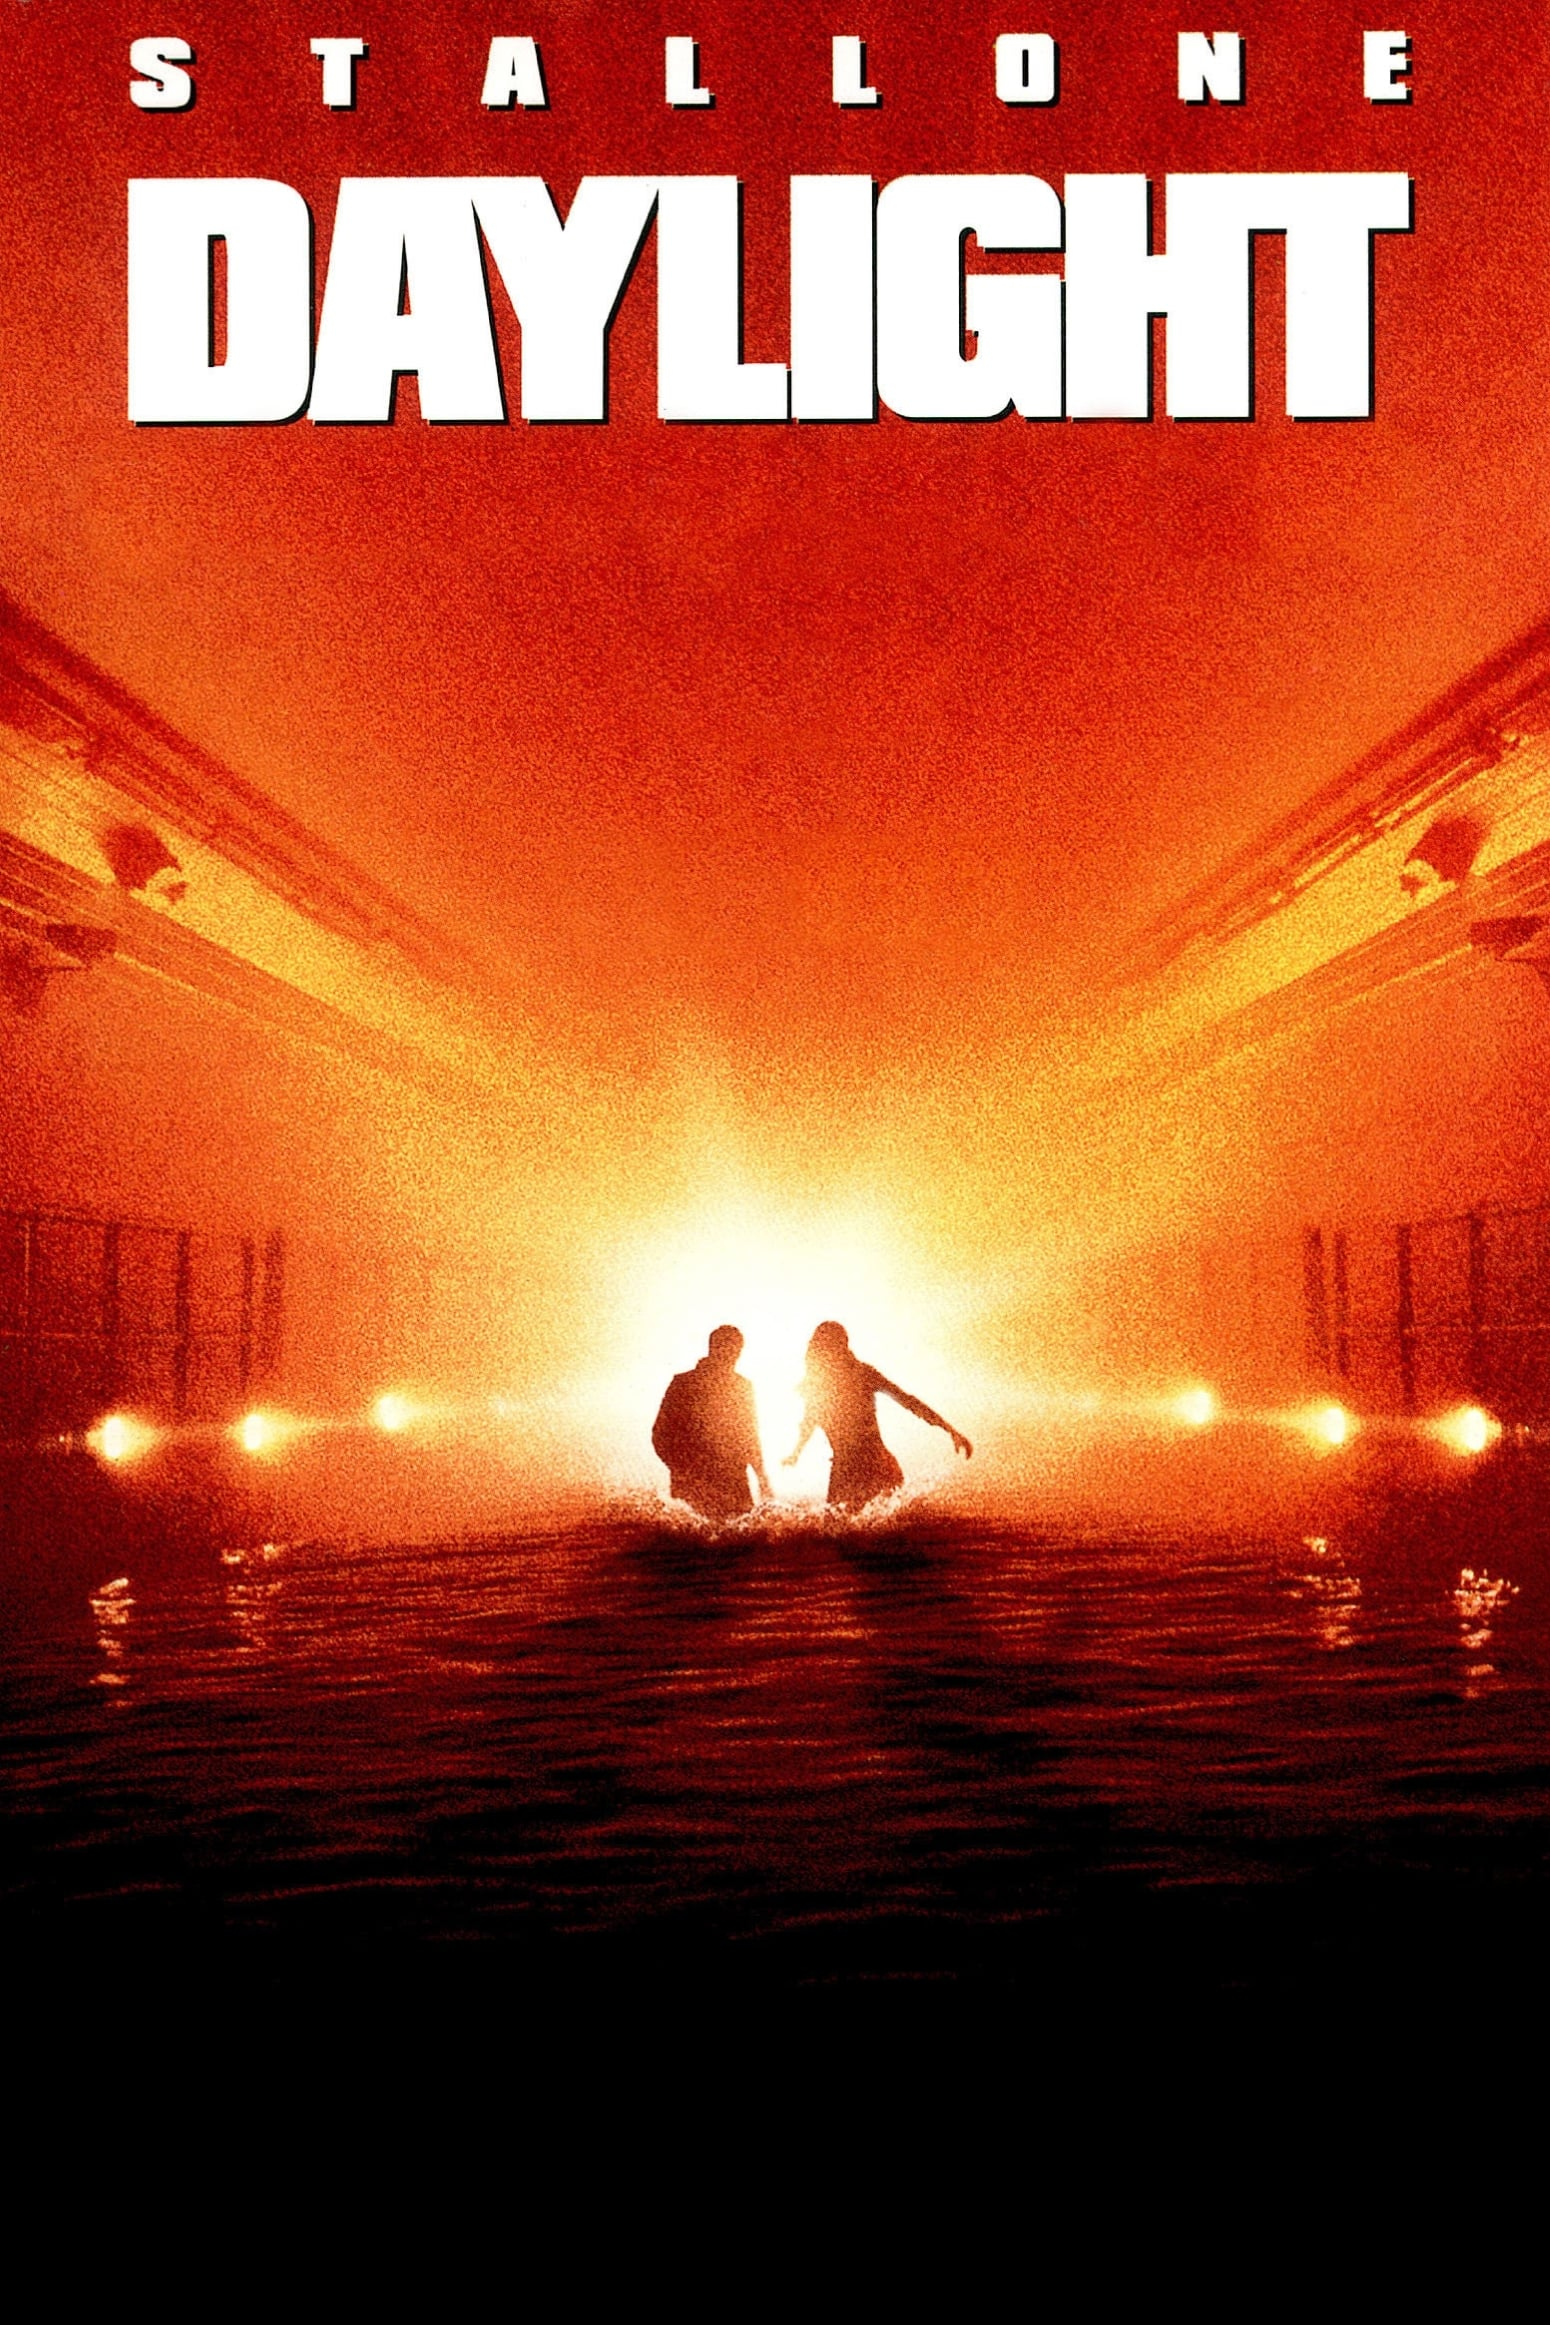 Daylight 1996 BluRay 1080p [5.05 GB] 720p [1.20 GB] 480p [576 MB] [Hindi DD 5.1 + English DD 5.1] | G-Drive